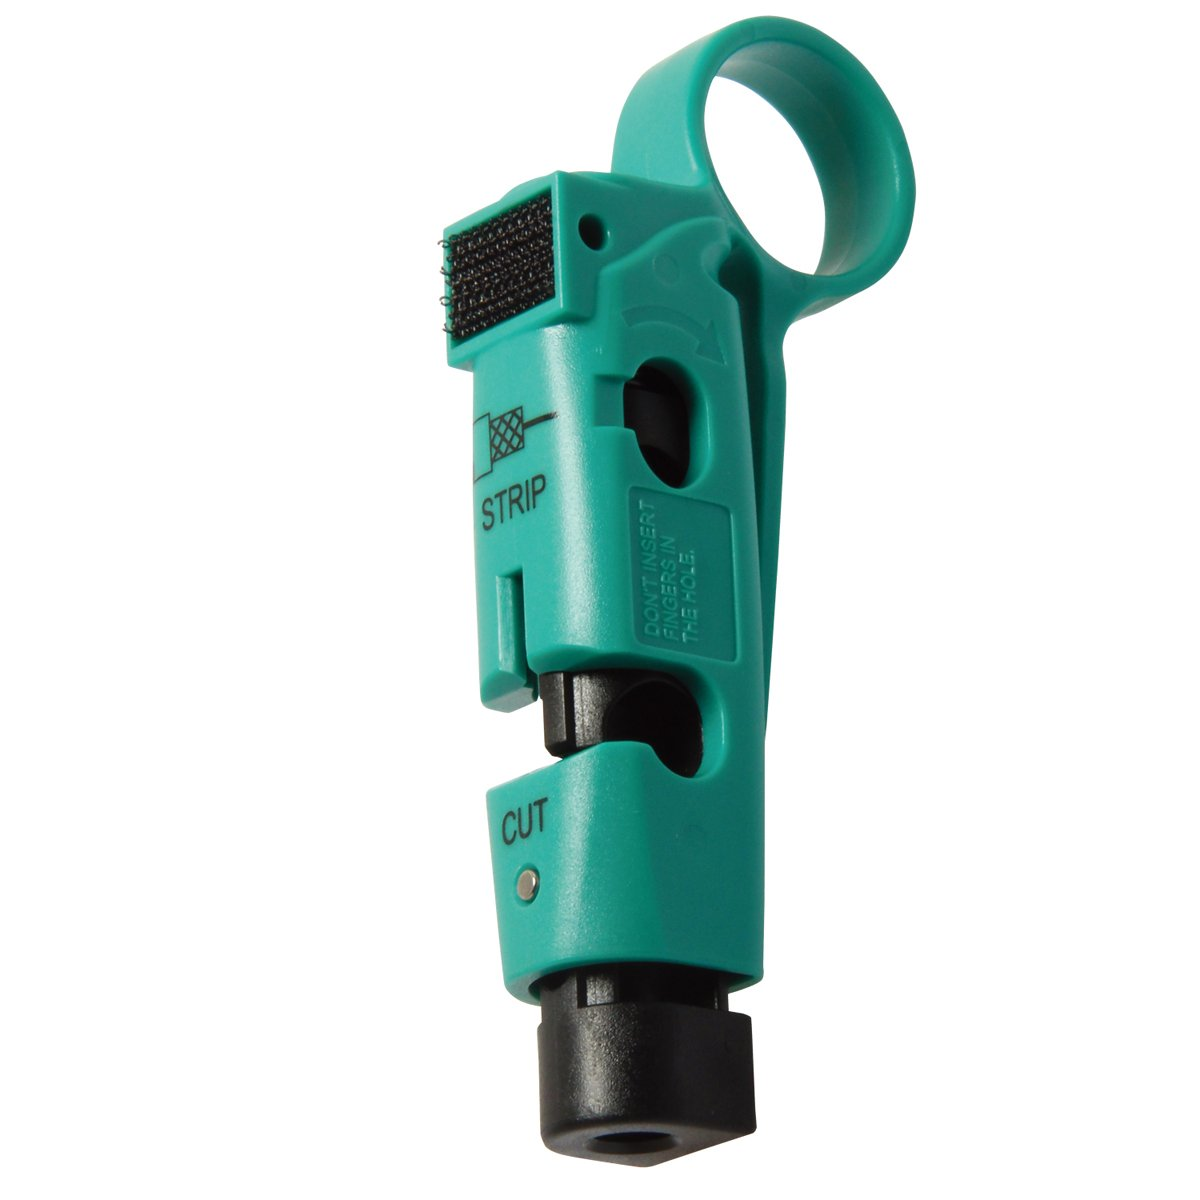 CP-507 Coaxial Cable Stripper/Cutter for RG-59, RG-6 Coaxial Cable Wire Stripper Tool 111mm Length by Tpmall (Image #2)